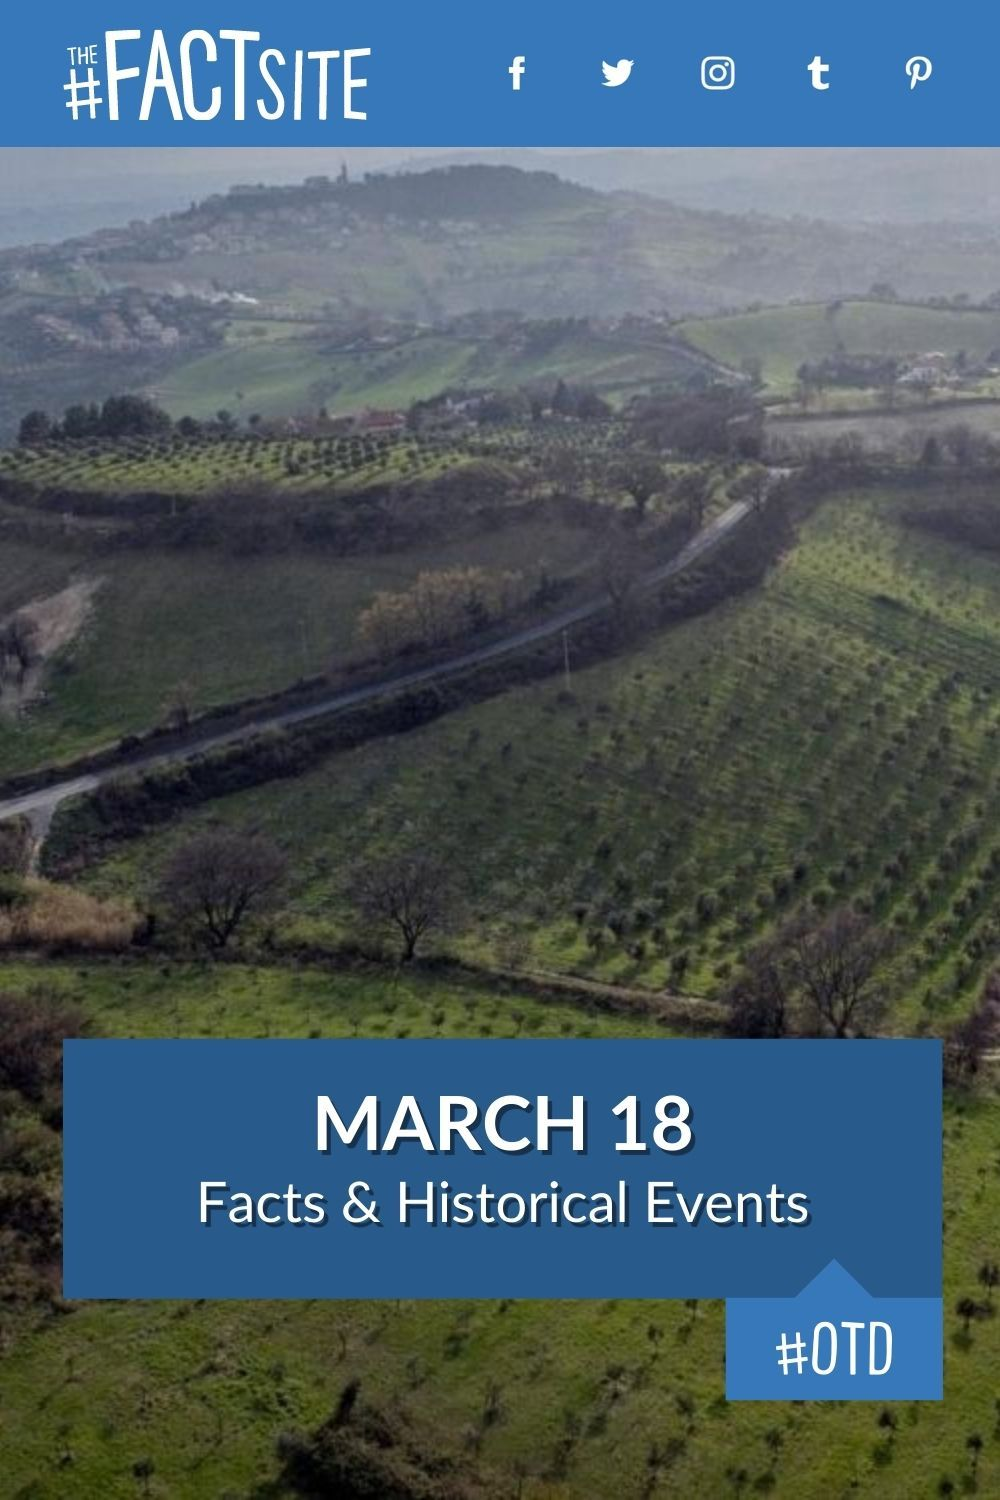 Facts & Historic Events That Happened on March 18